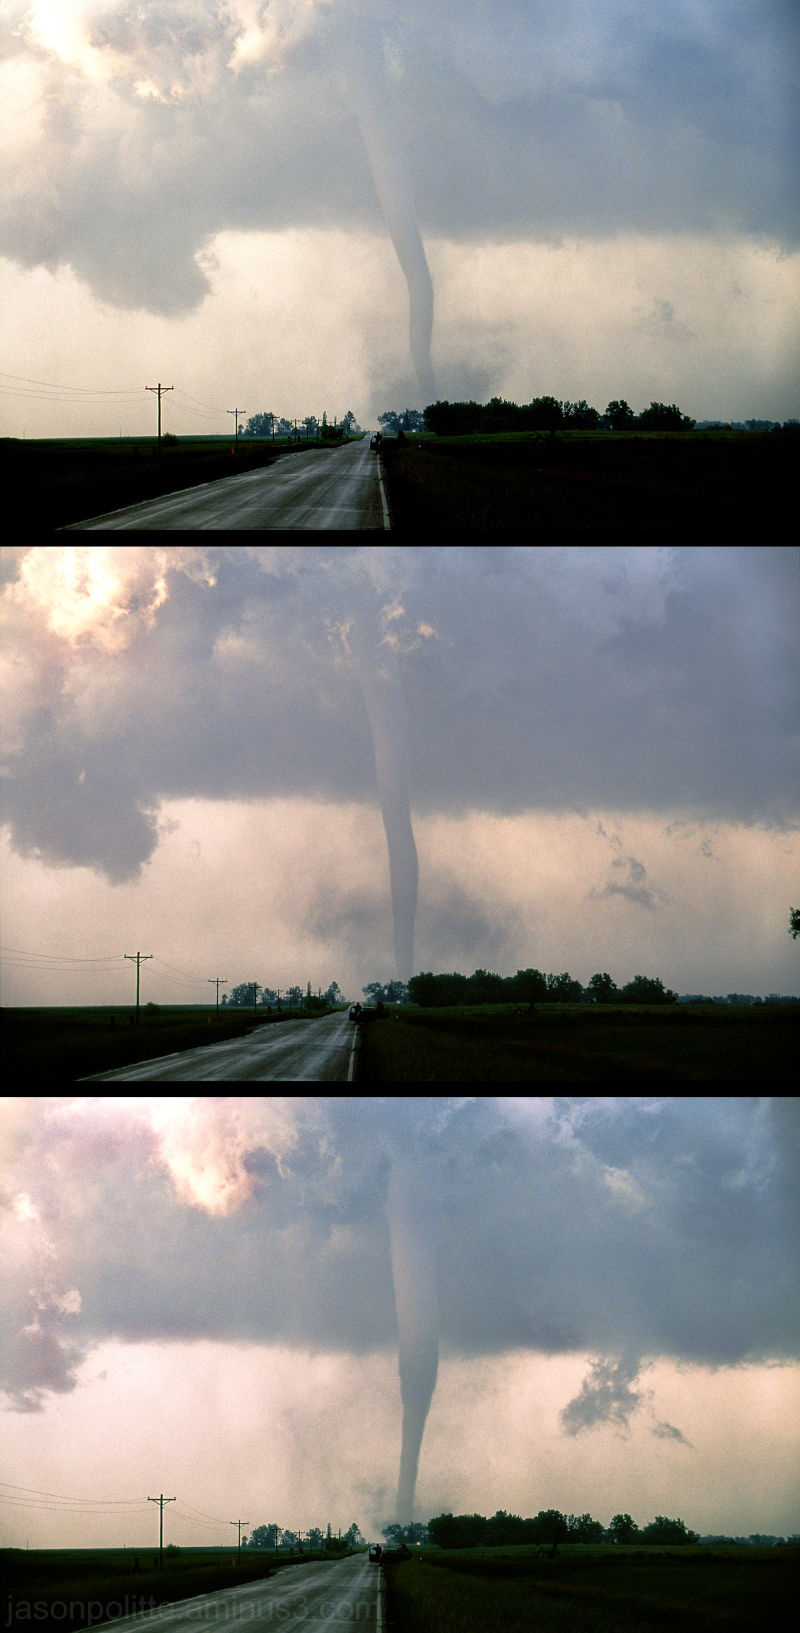 The Manchester South Dakota Tornado